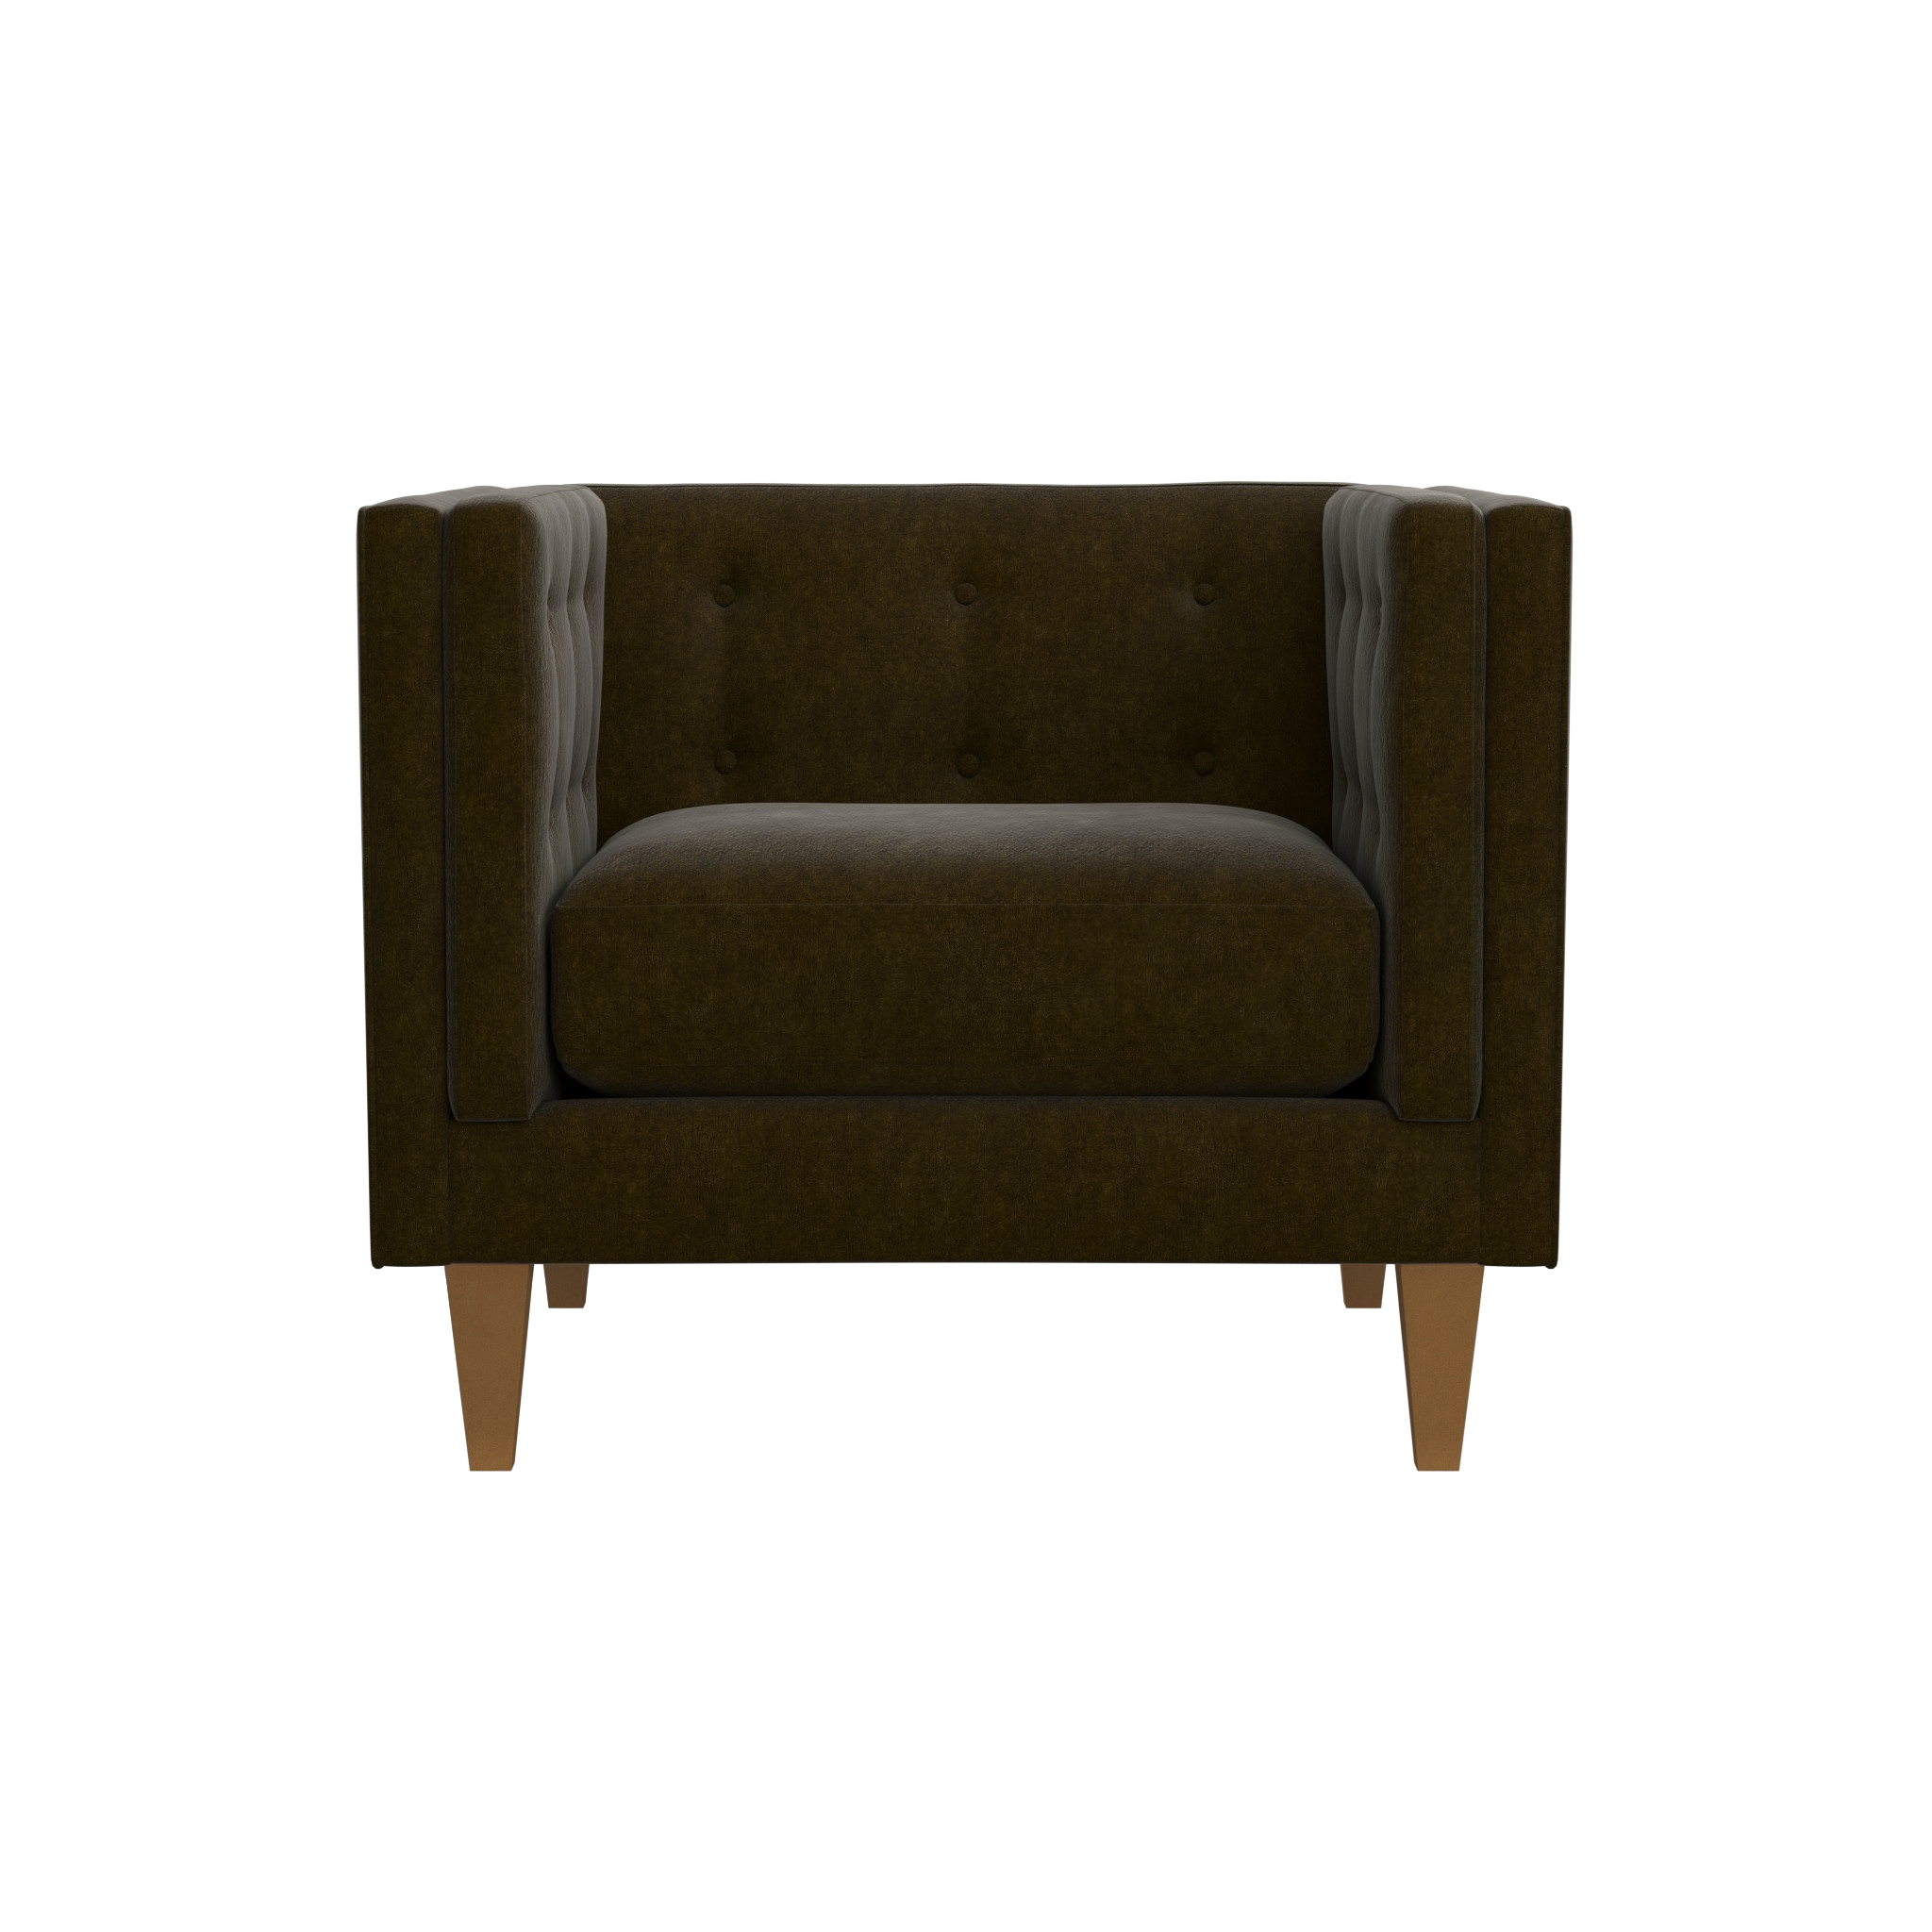 "Aidan Velvet 38"" Tufted Chair 